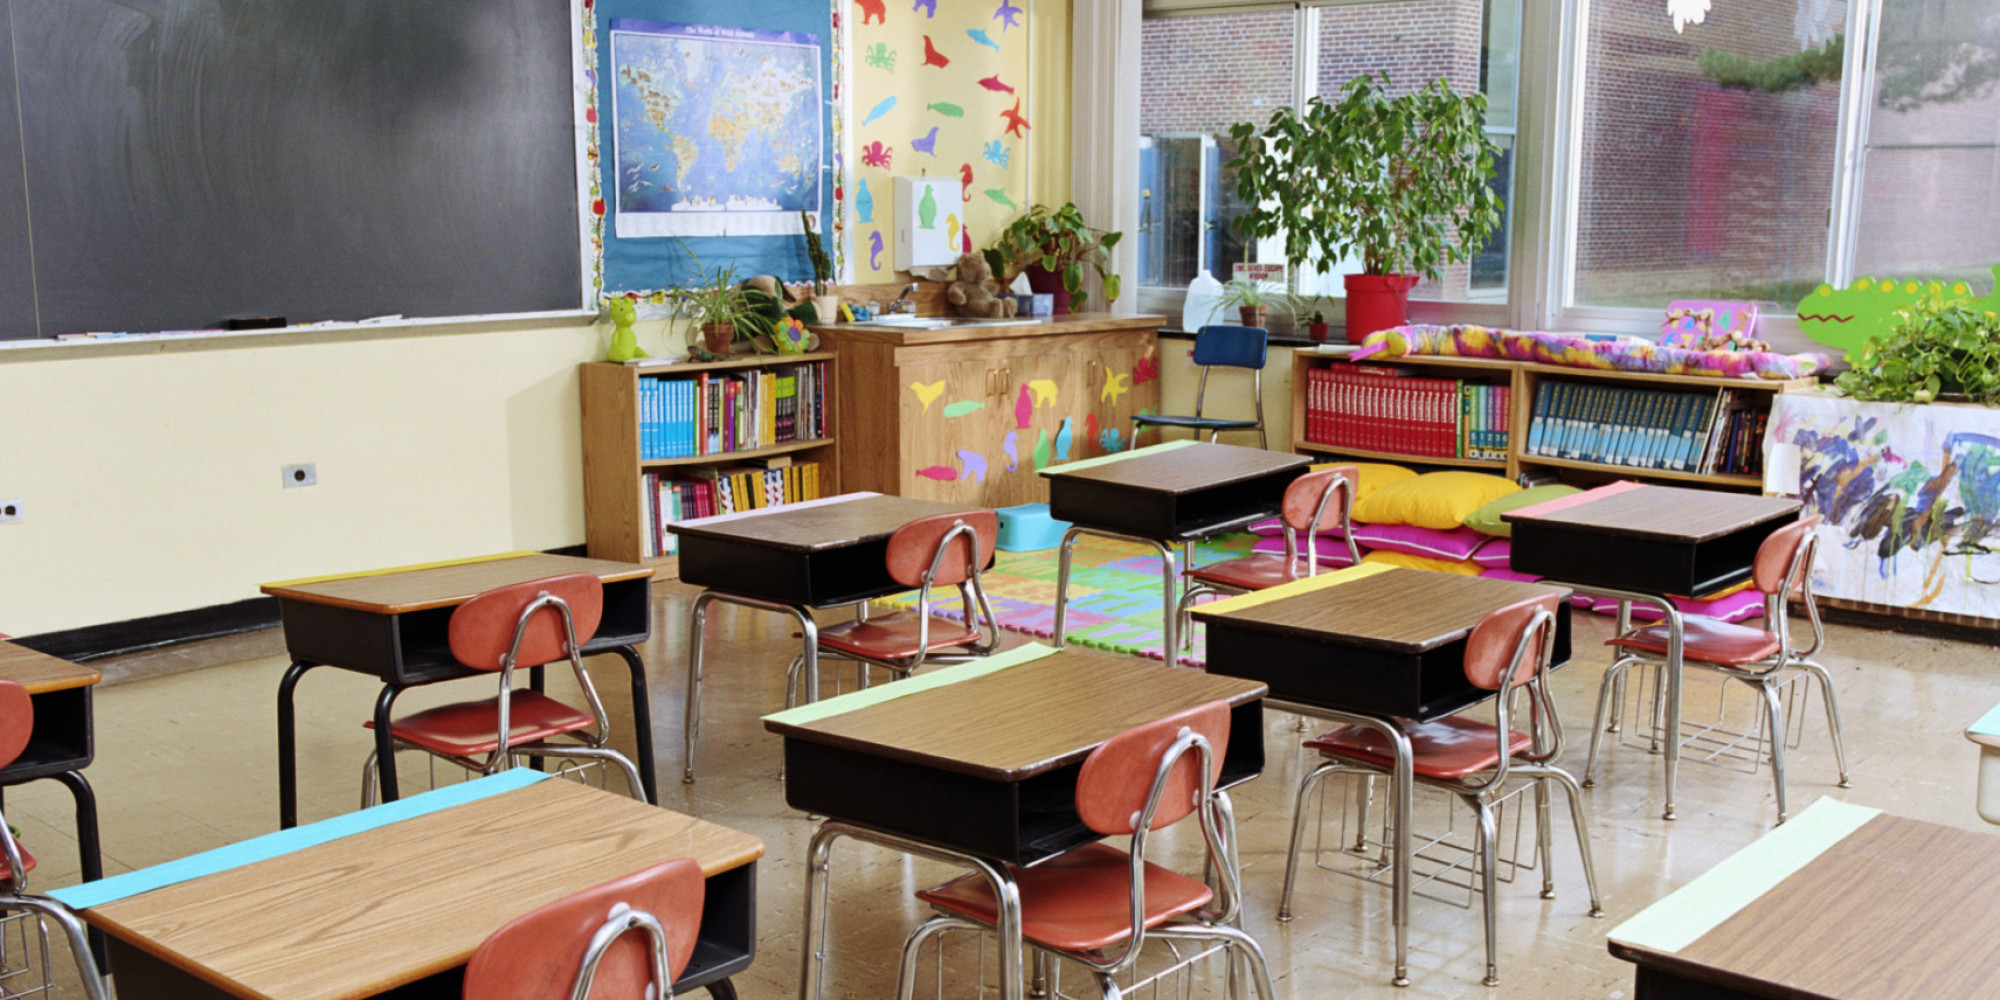 Classroom Furniture Arrangement ~ We need innovative ways to fund early childhood education